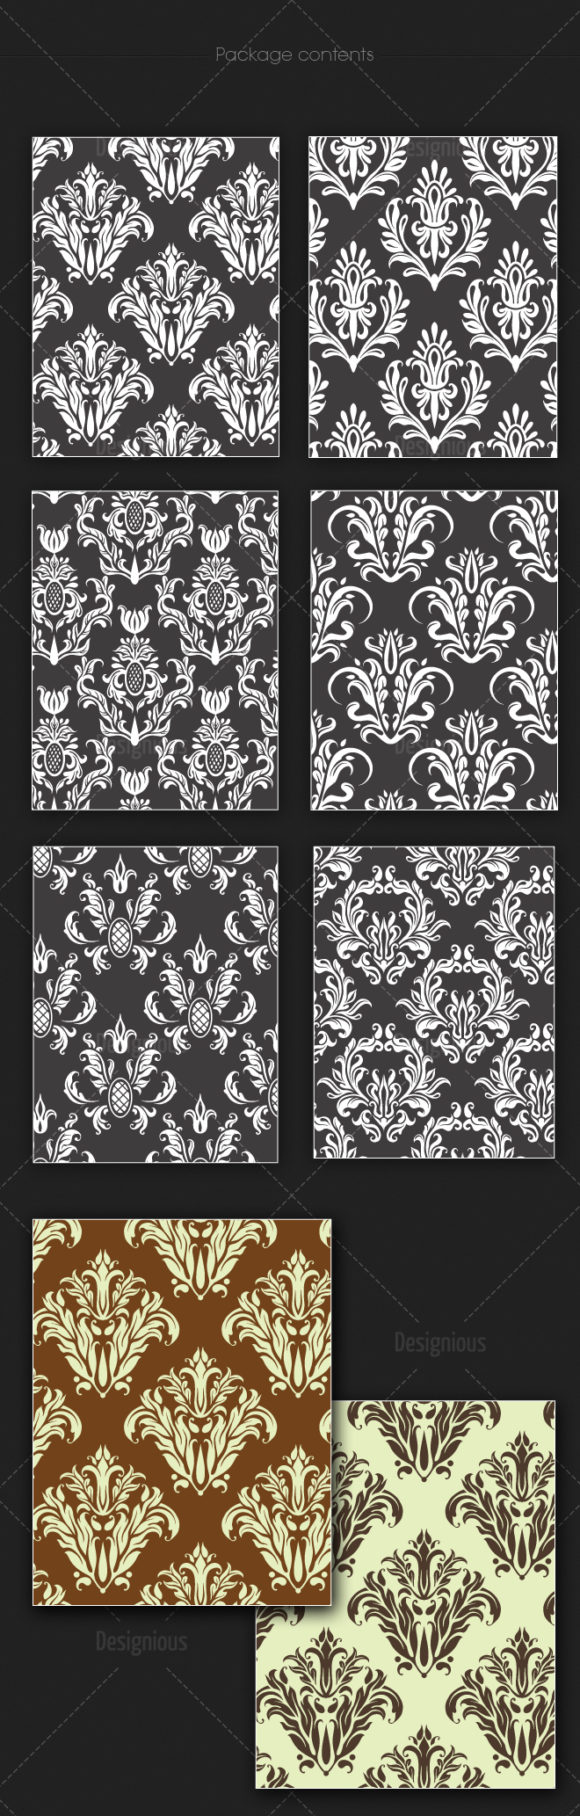 Seamless Patterns Vector Pack 134 6